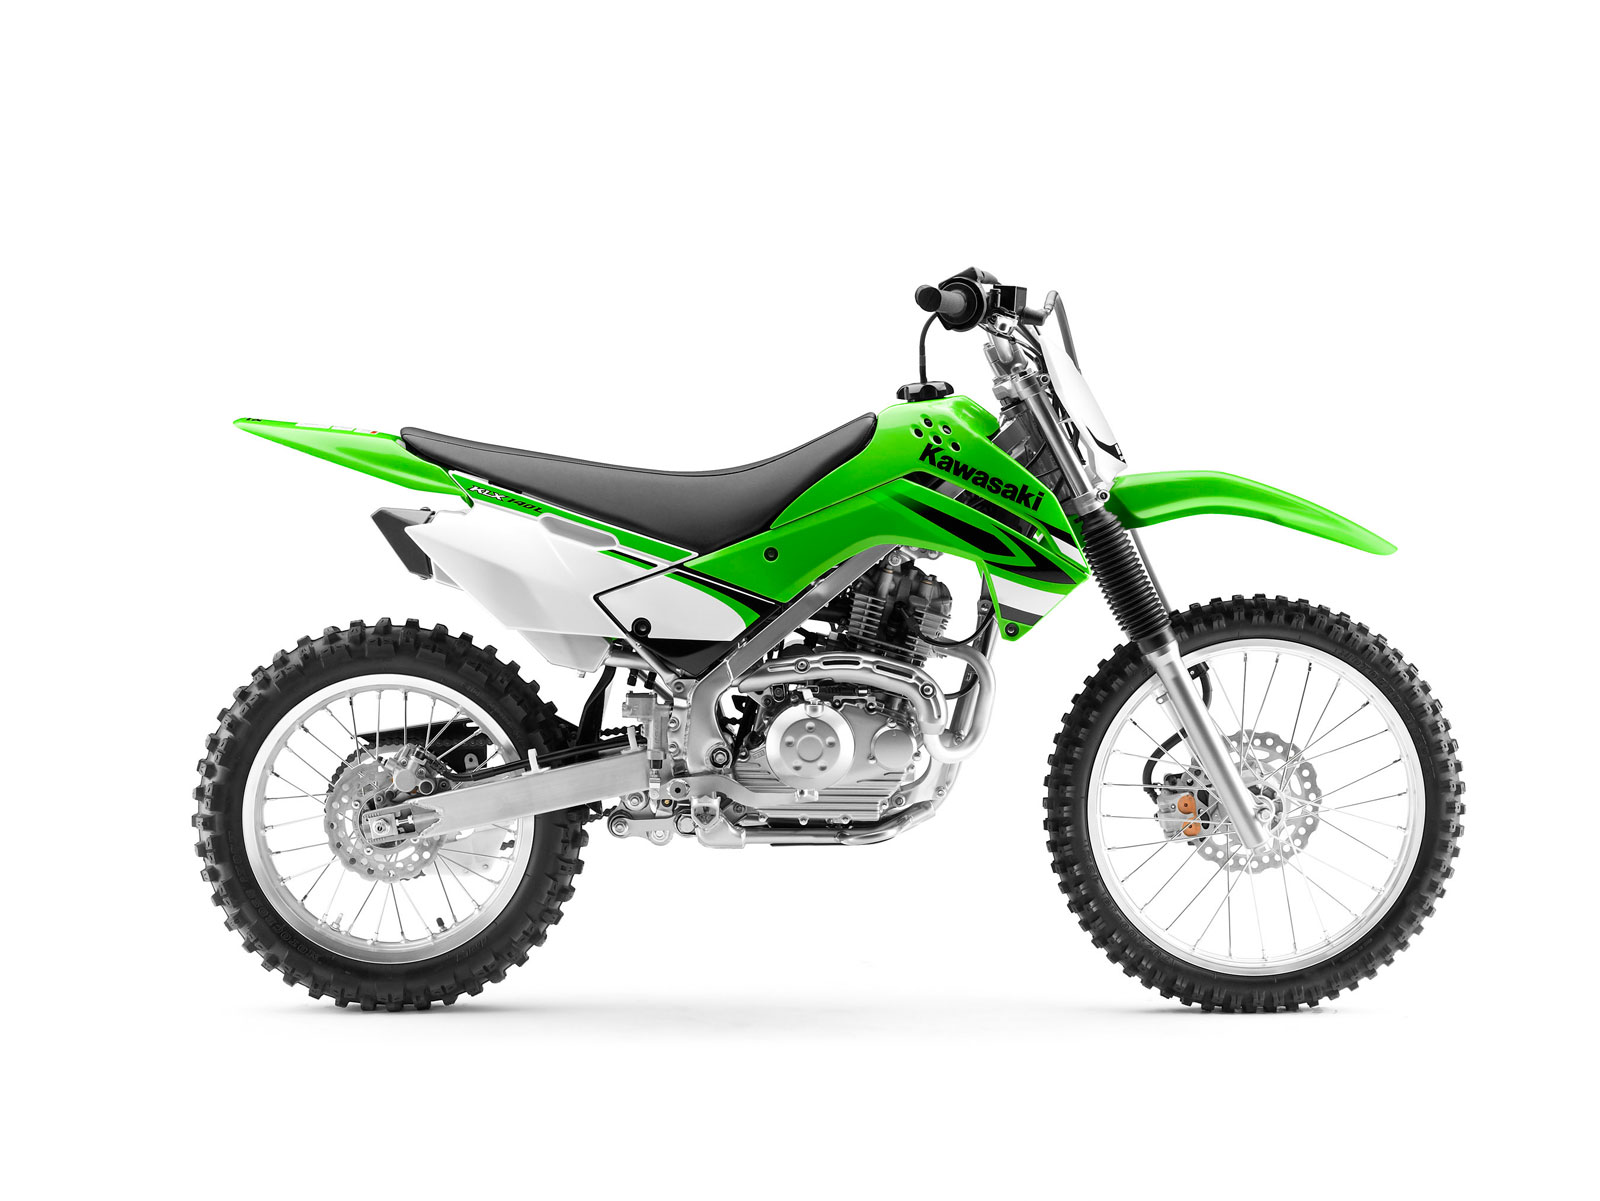 Kawasaki Klx 140 L Pics Specs And Information